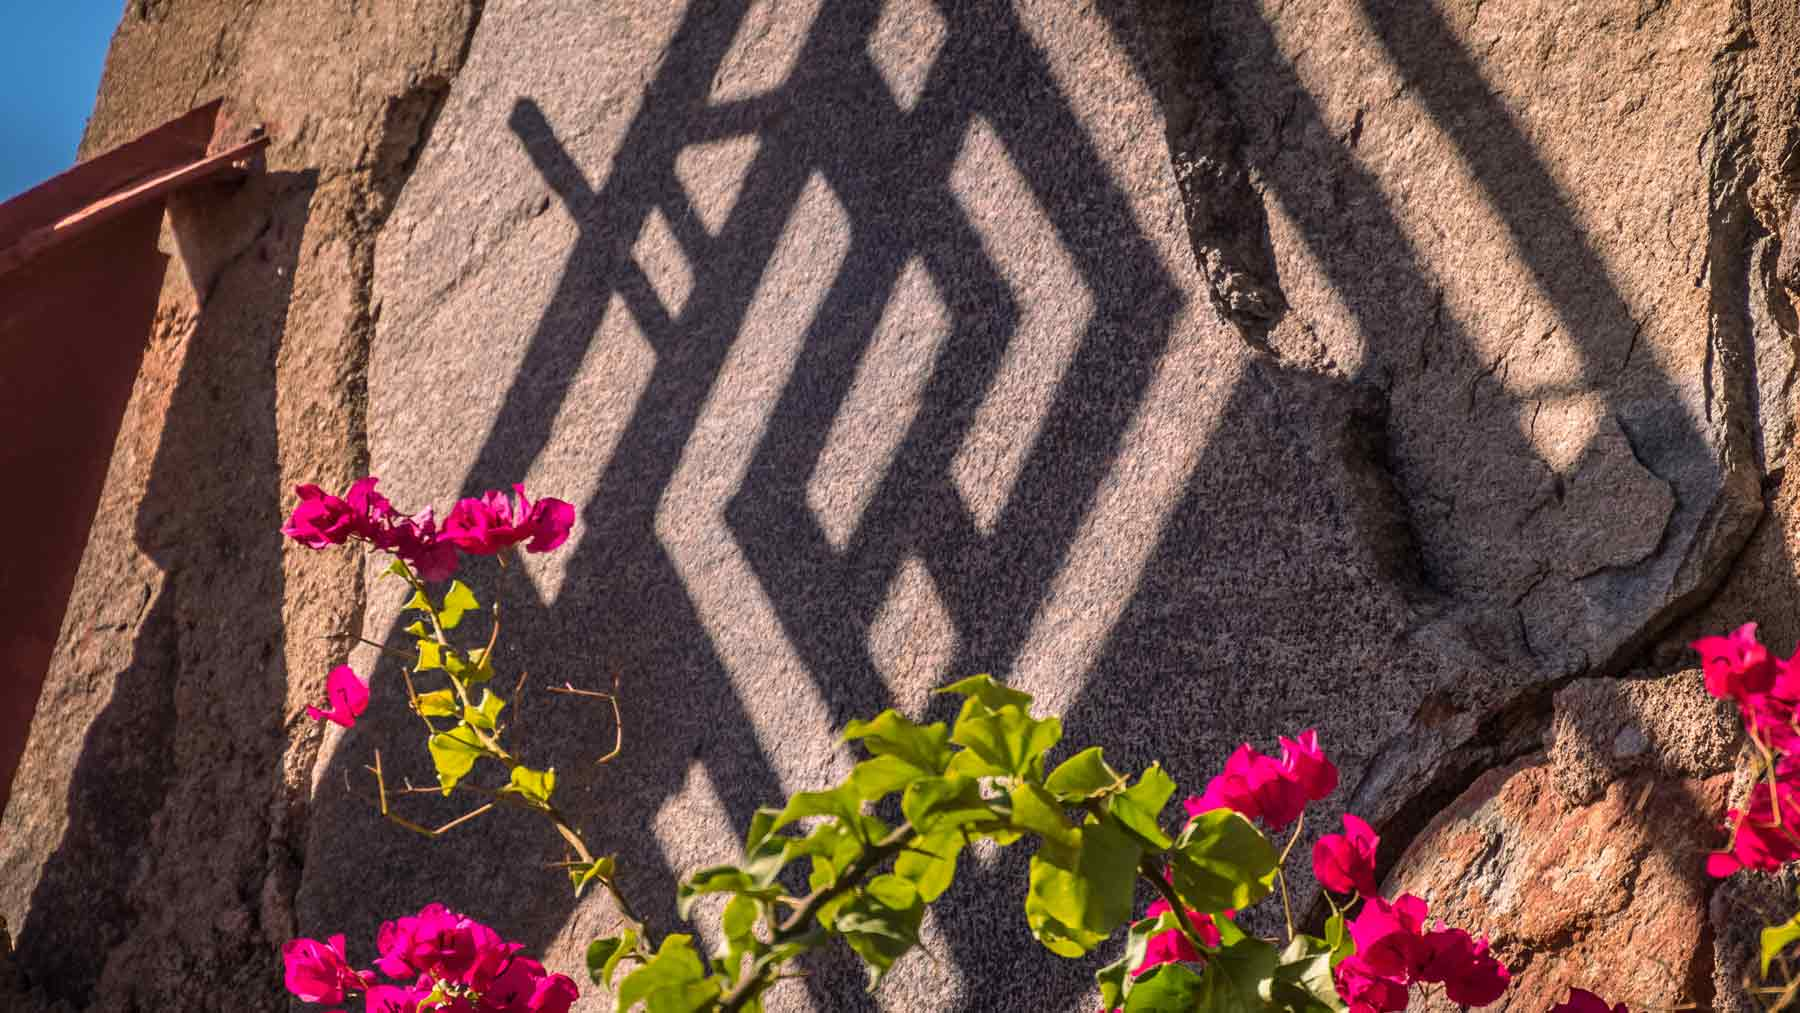 Shadow of the Taliesin West symbol on a wall